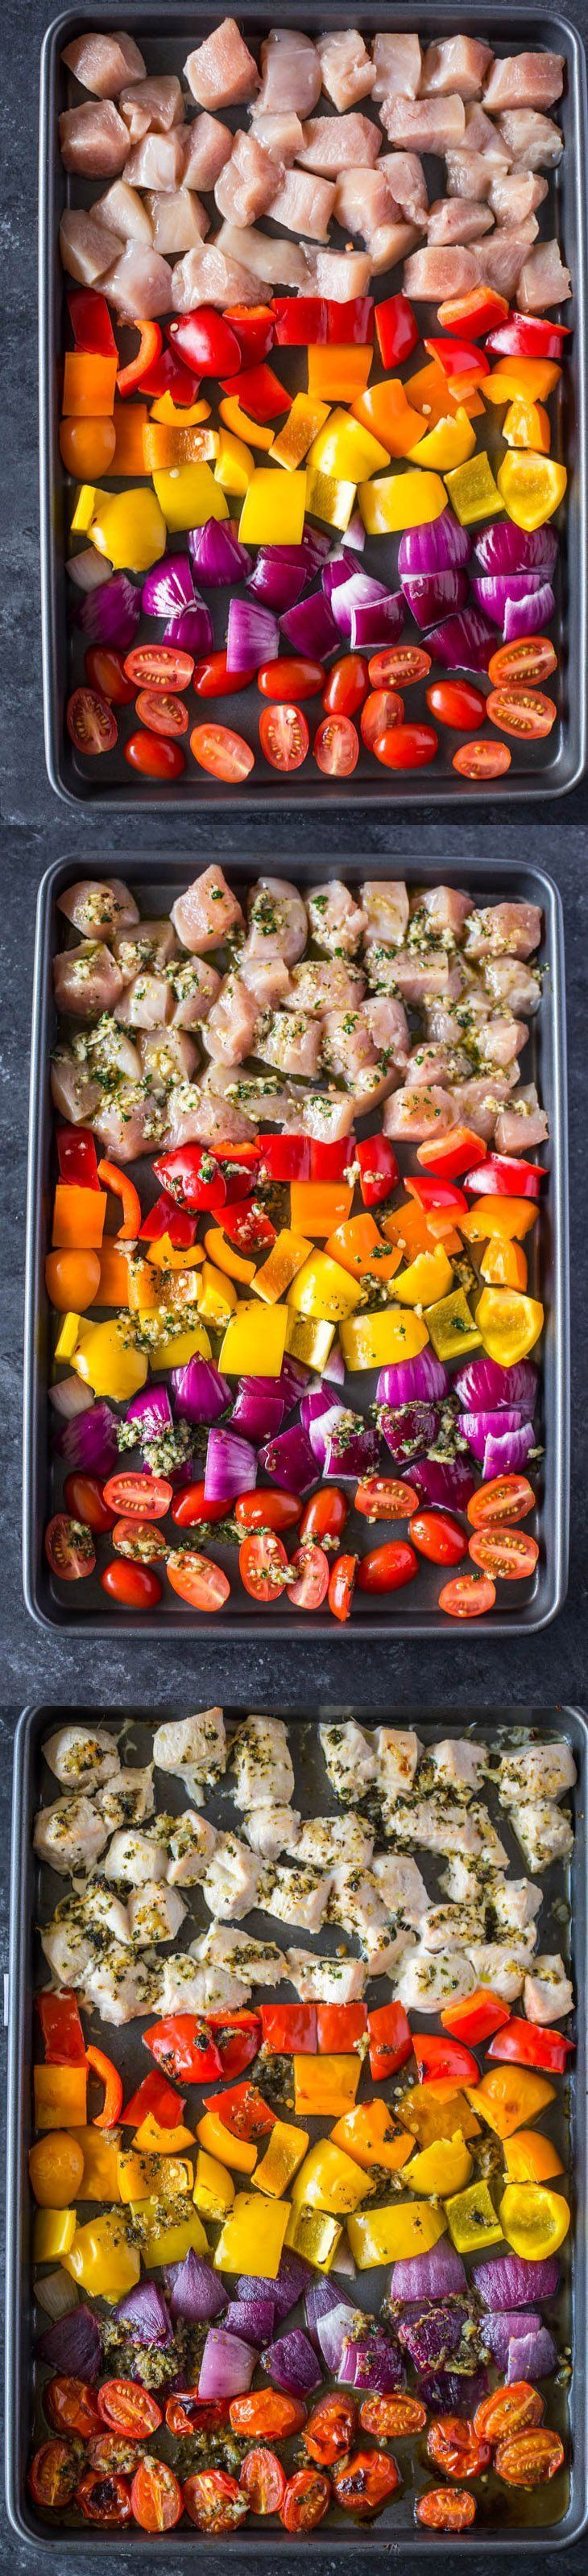 An easy one pan meal to prepare in a hurry.  Sheet Pan Greek Chicken and Veggies | Gimme Delicious